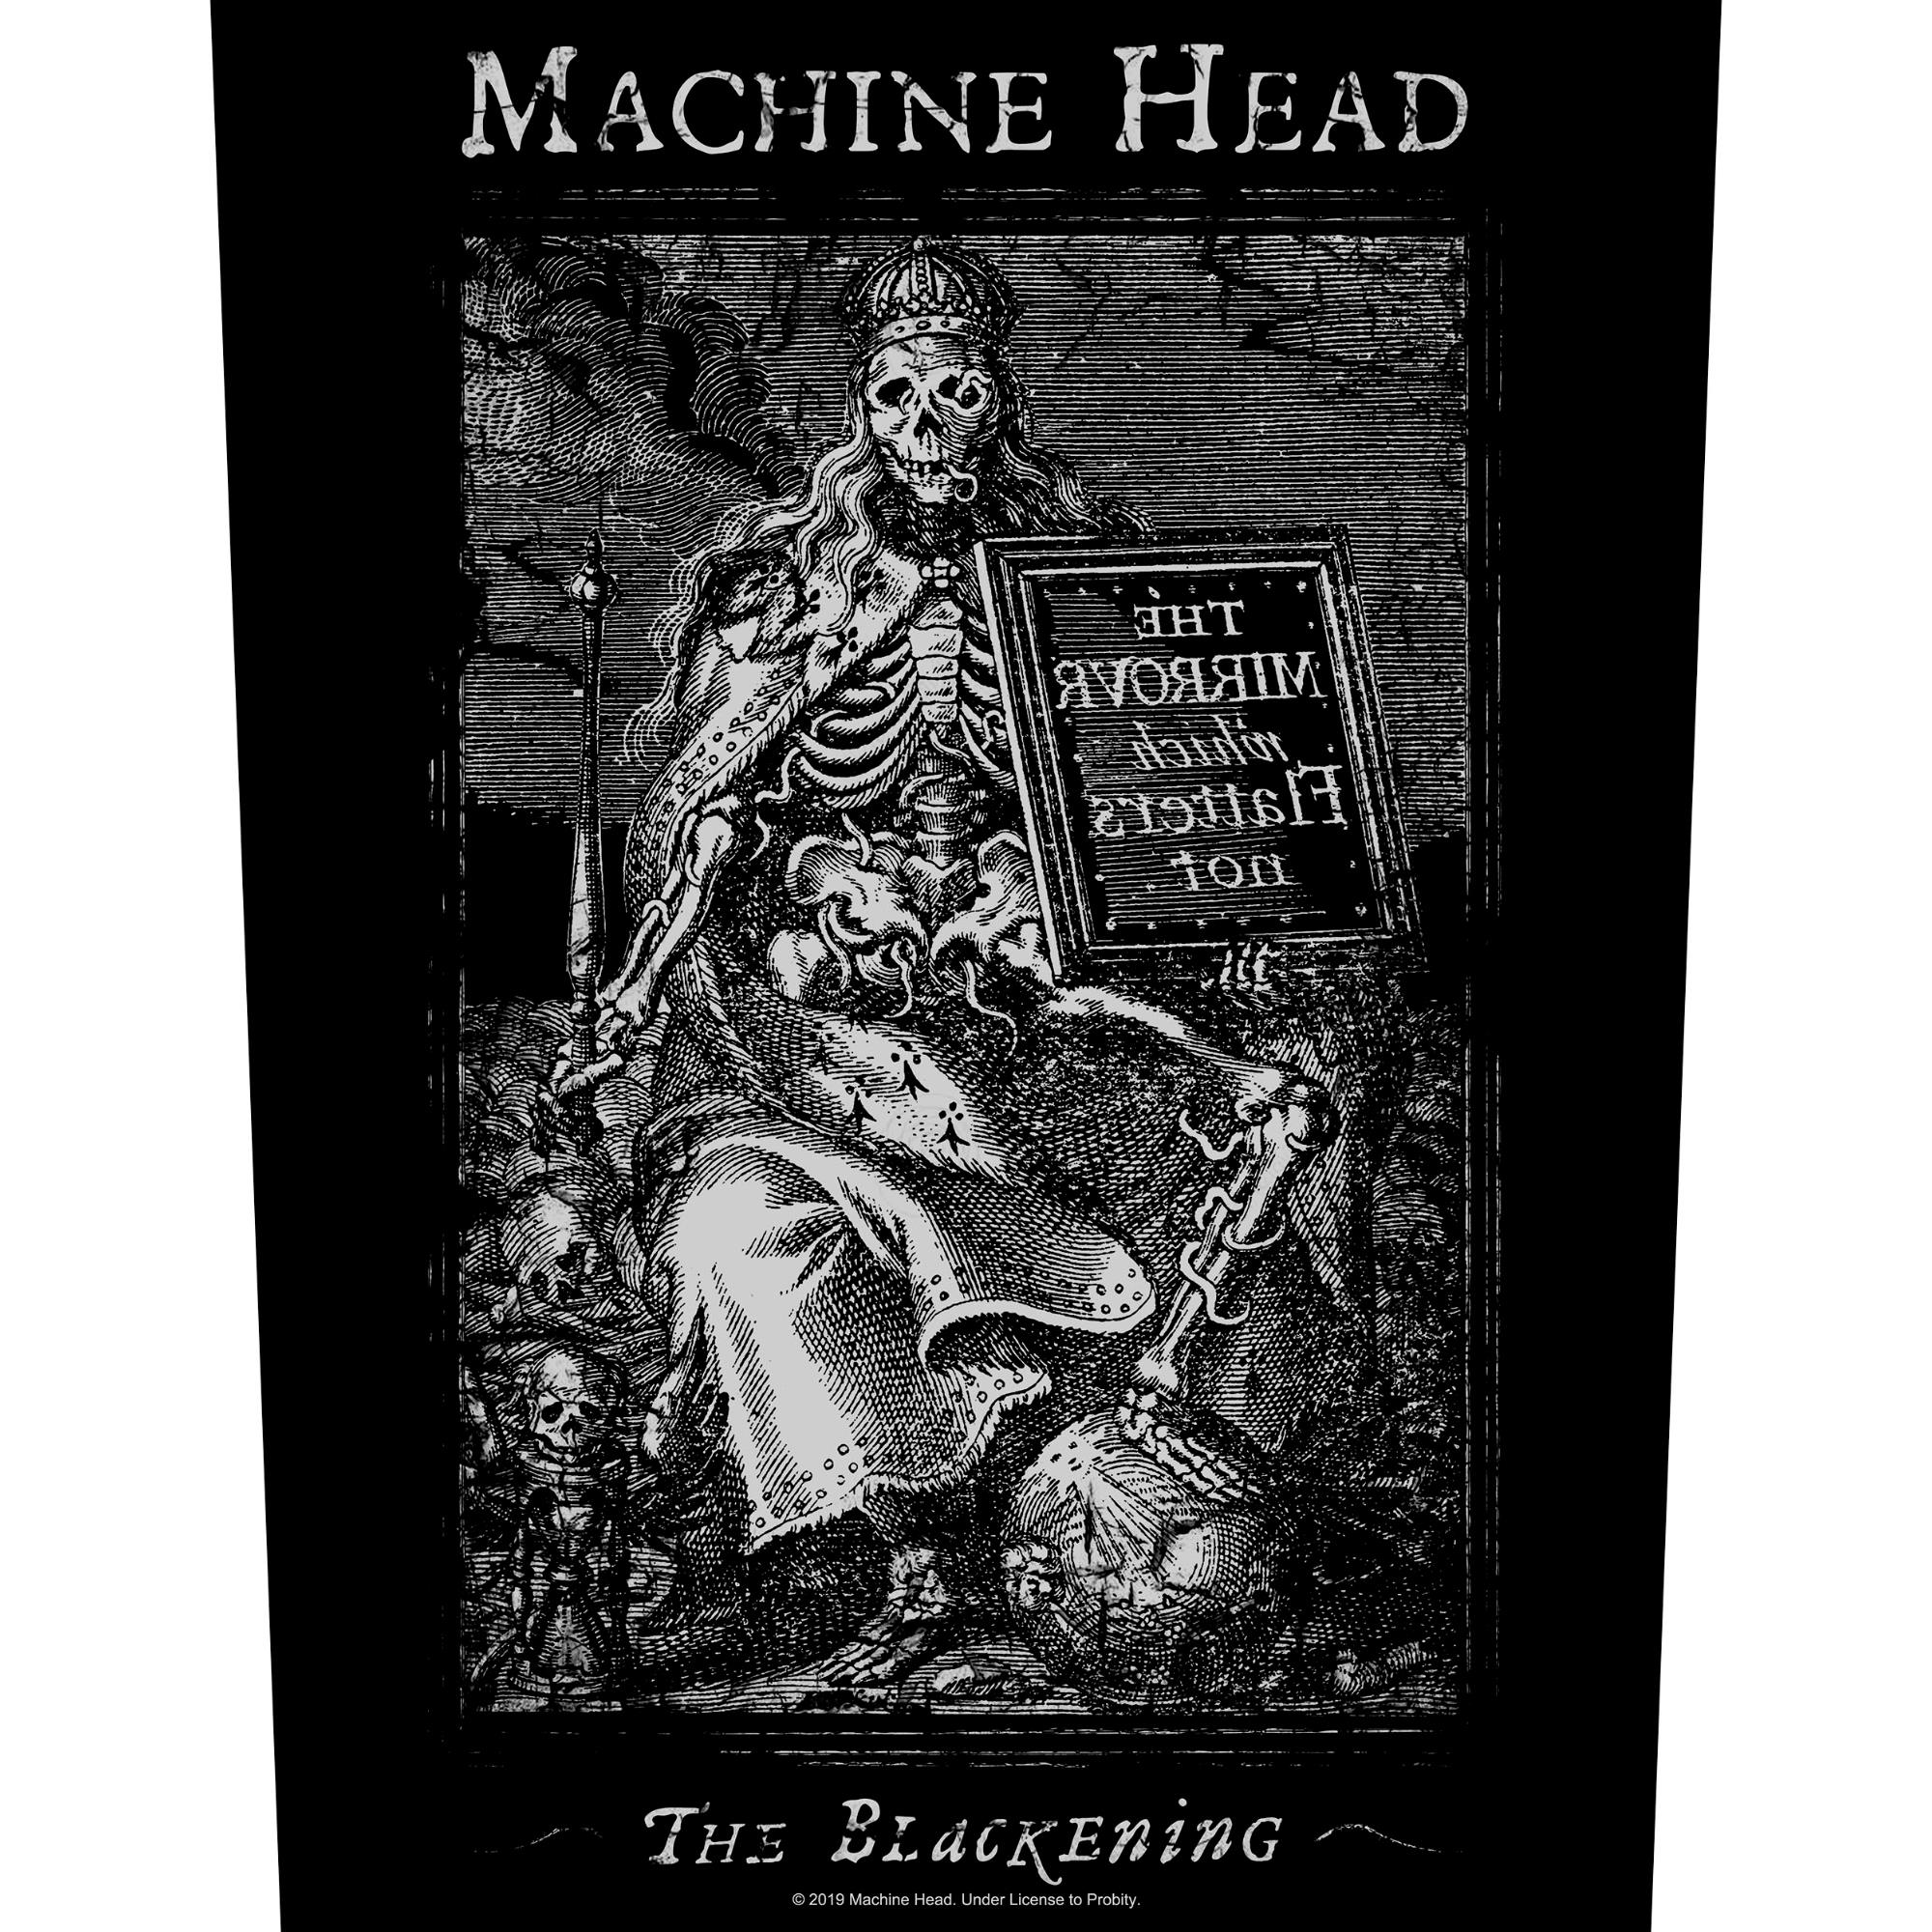 The Blackening Backpatch